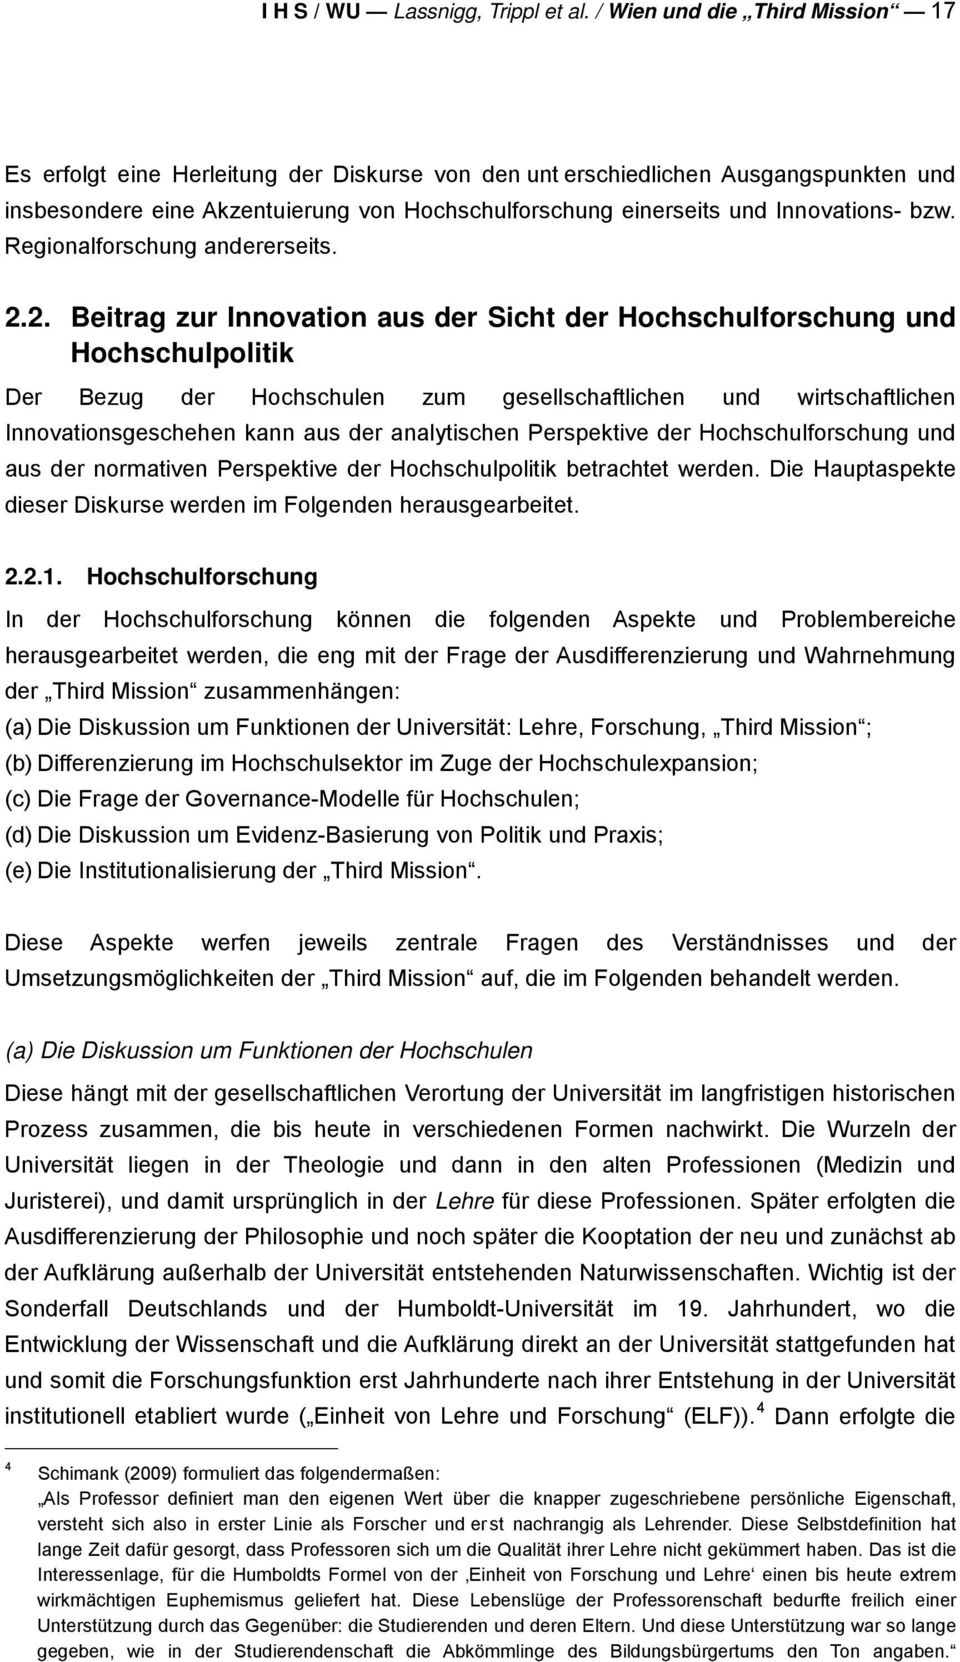 Innovations- bzw. Regionalforschung andererseits. 2.